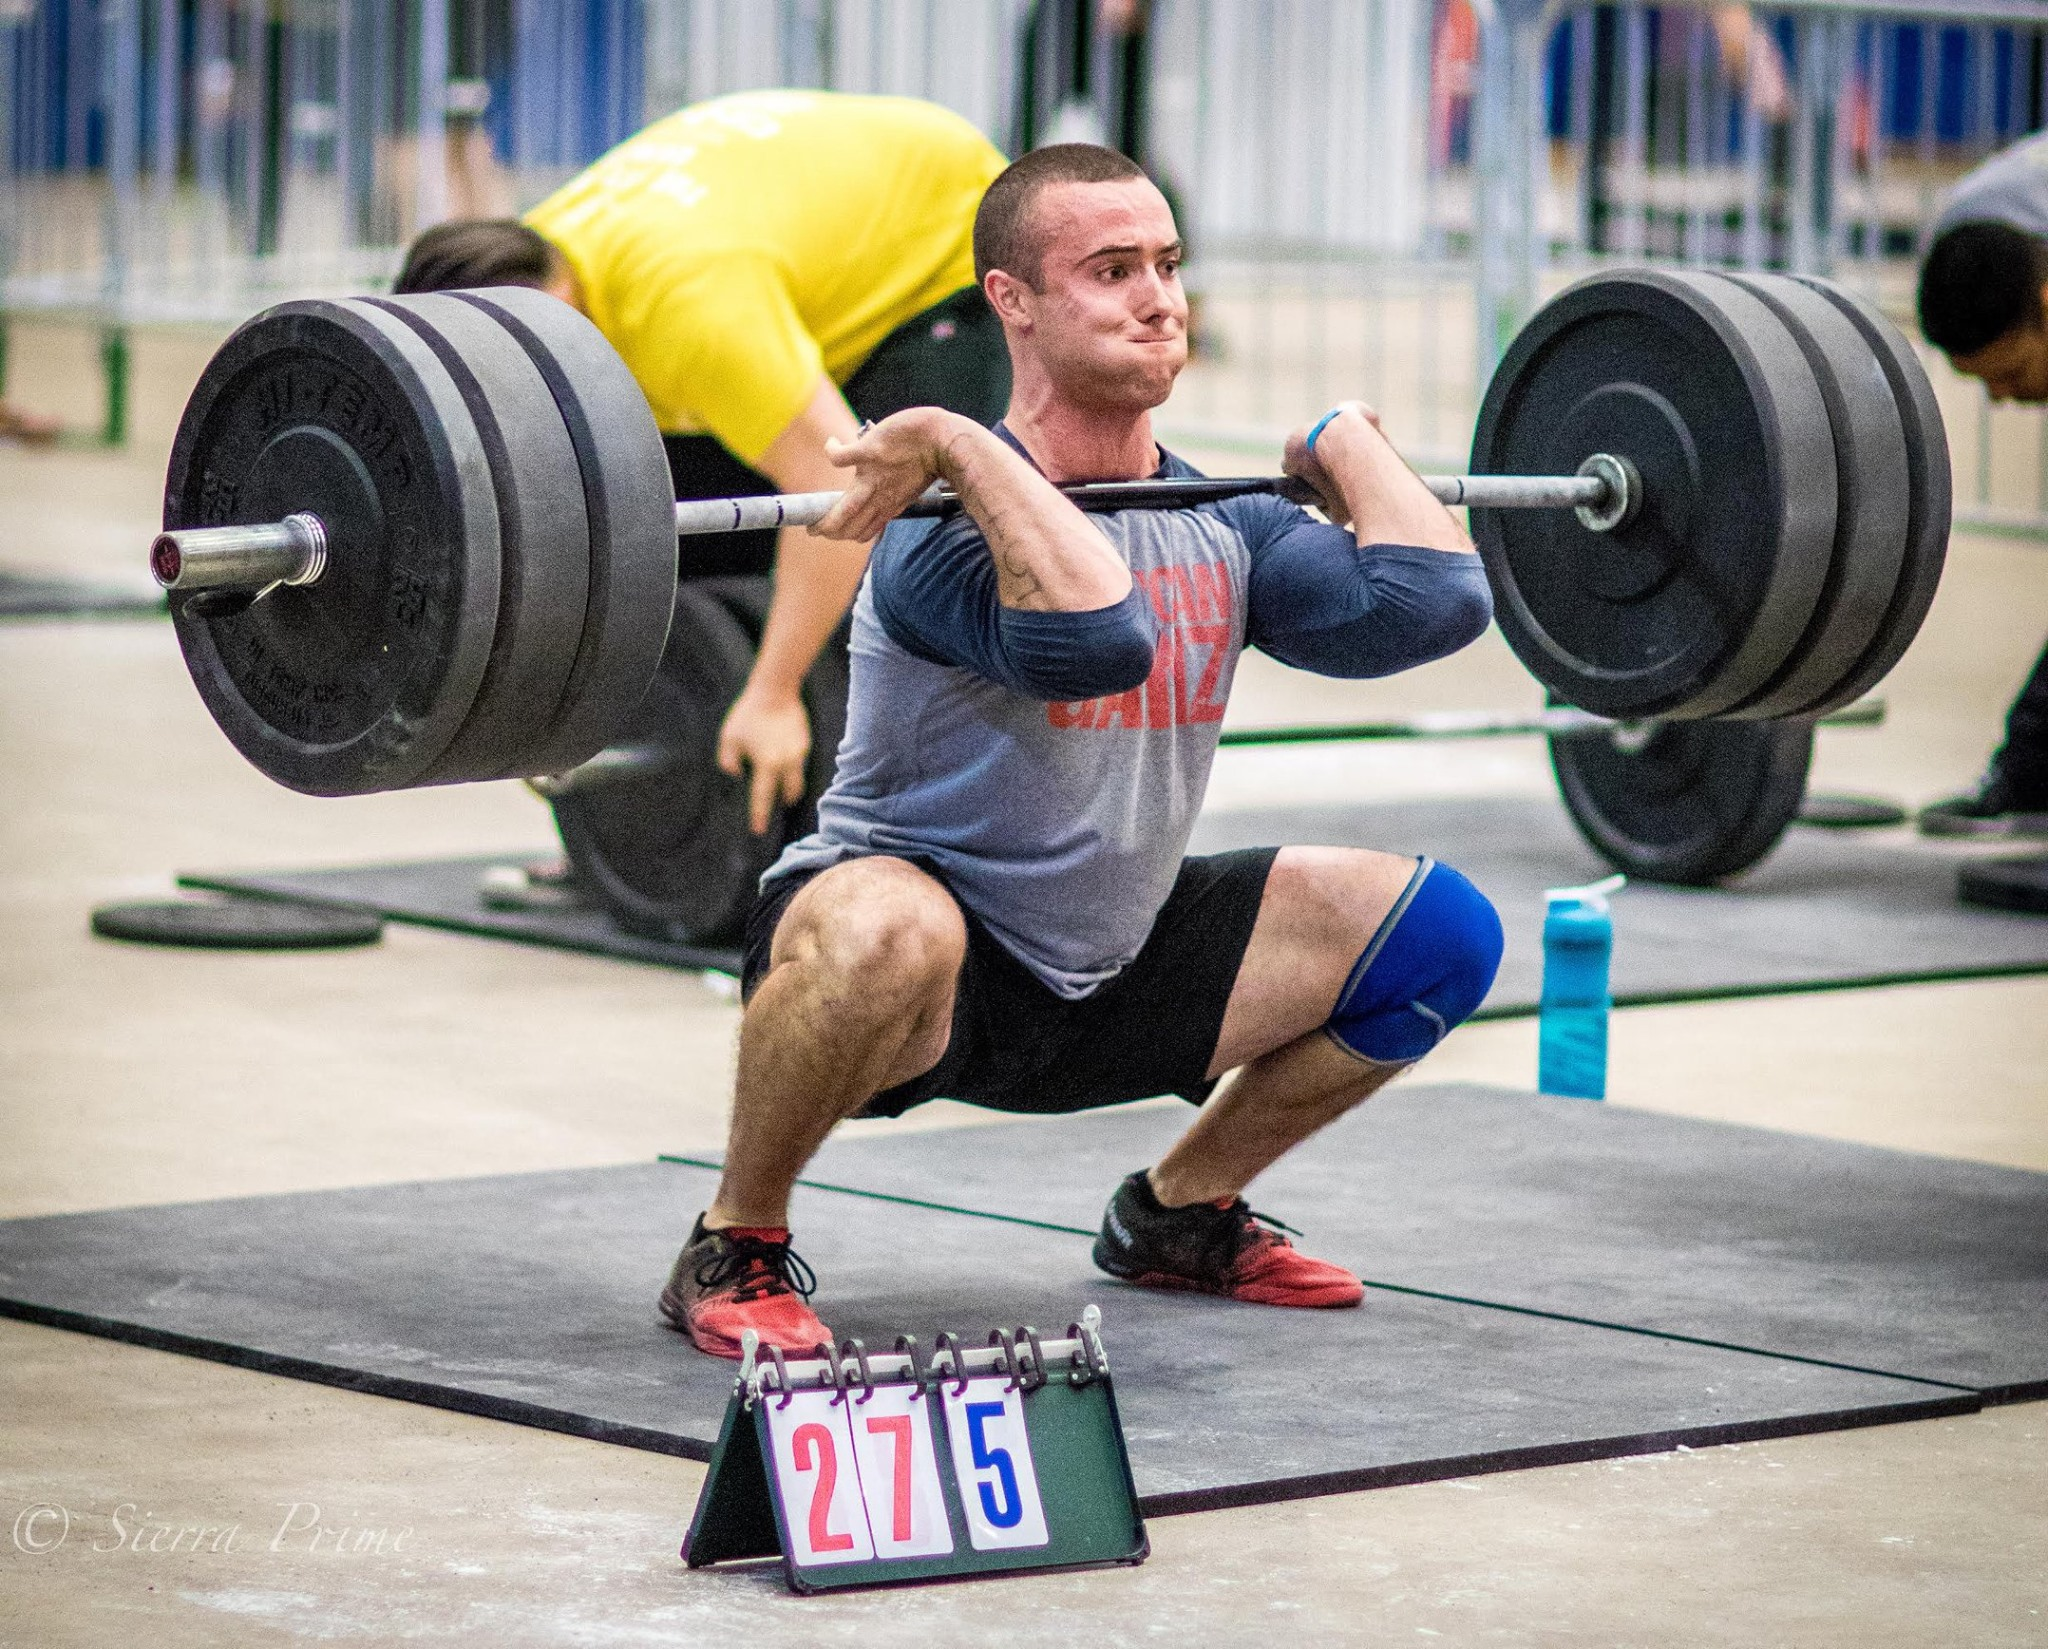 Kevin representing EaDo Elite at The Fittest Games where they took 4th place overall.